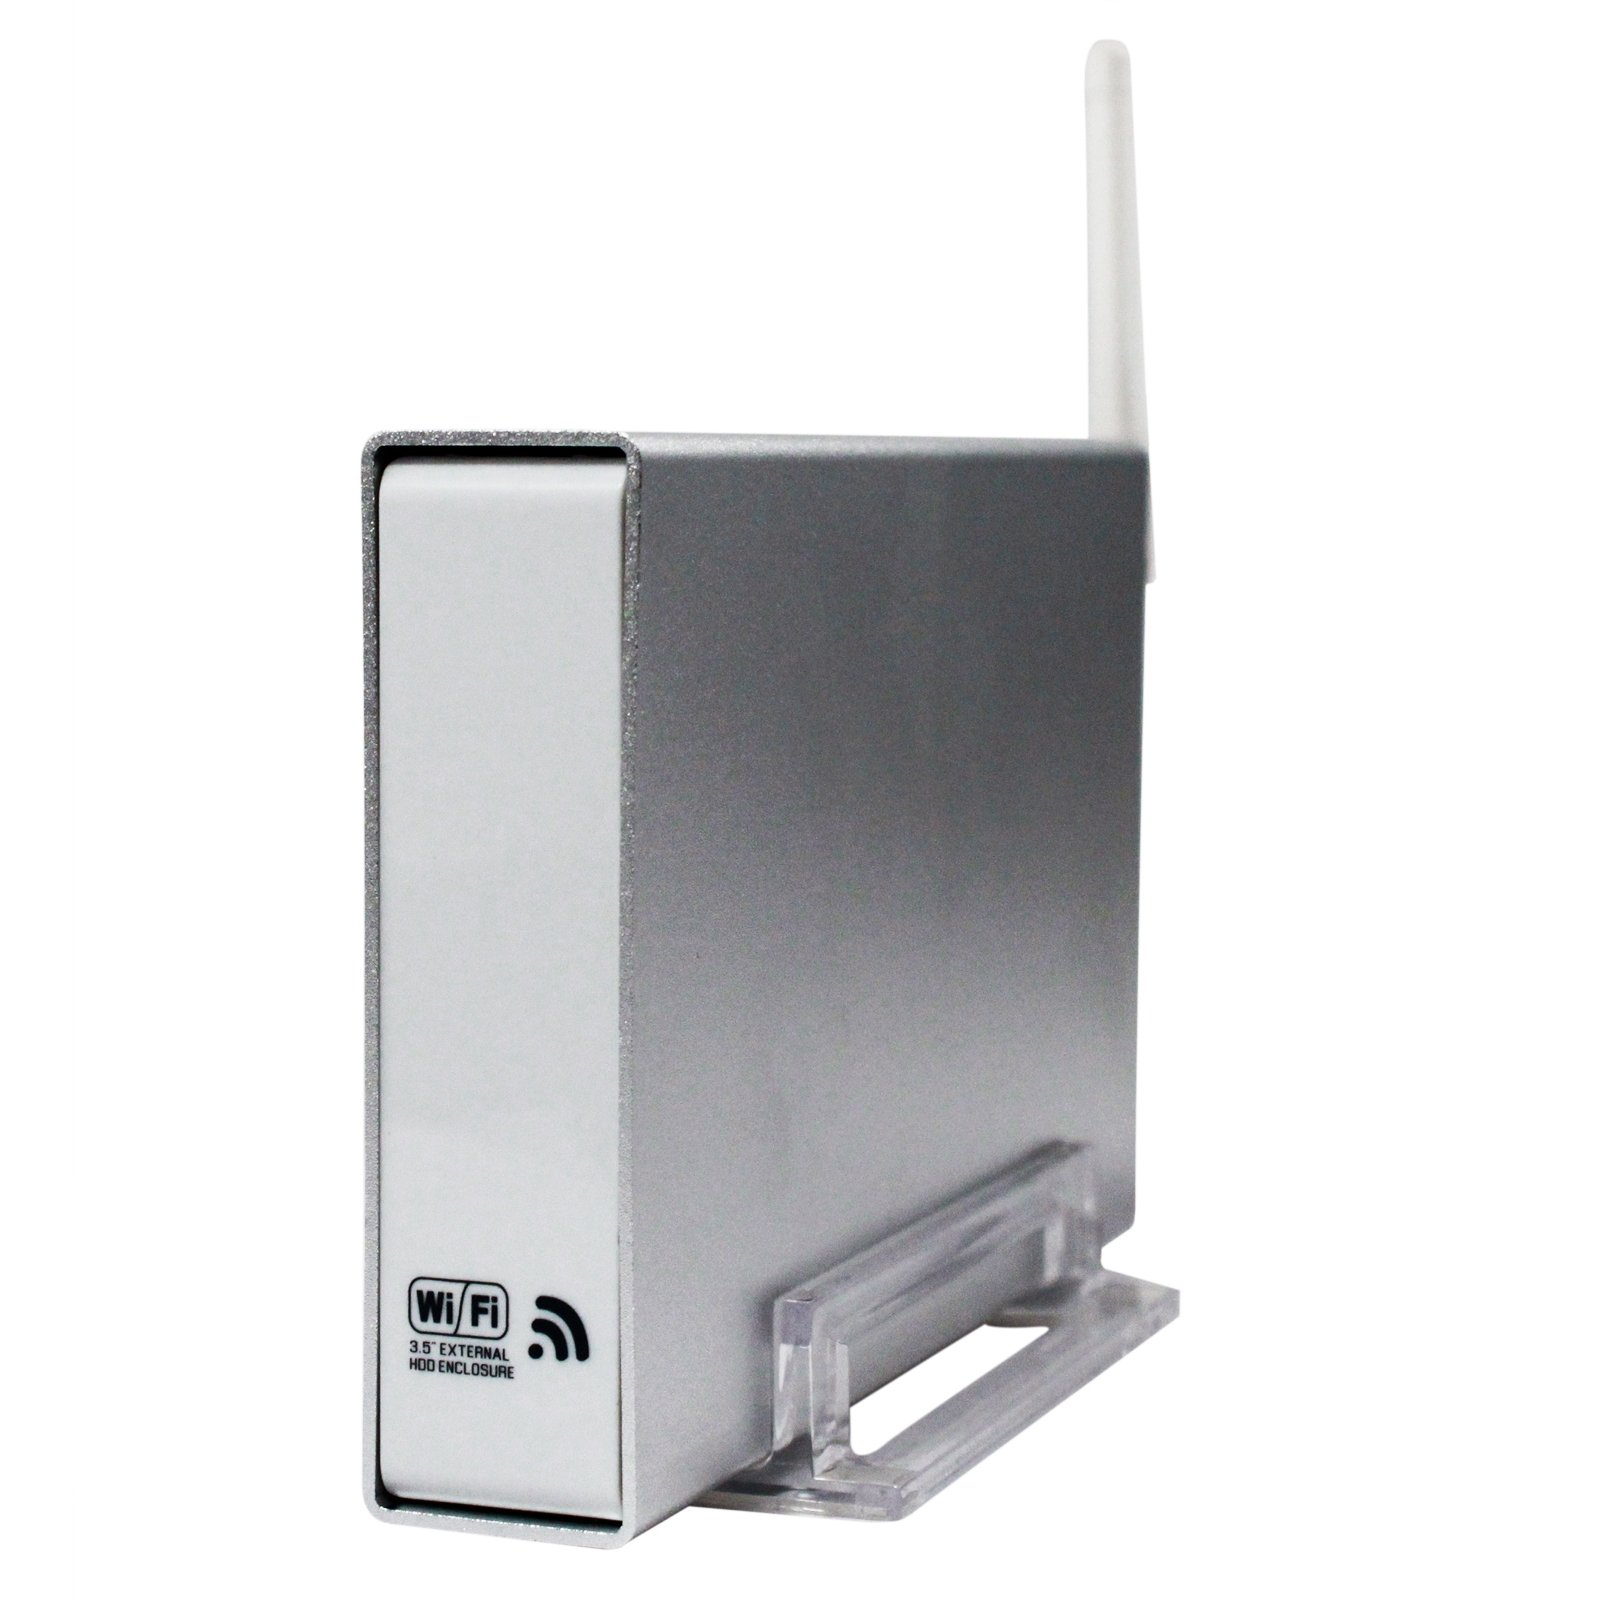 WiFi Media Streaming File Server Access Point